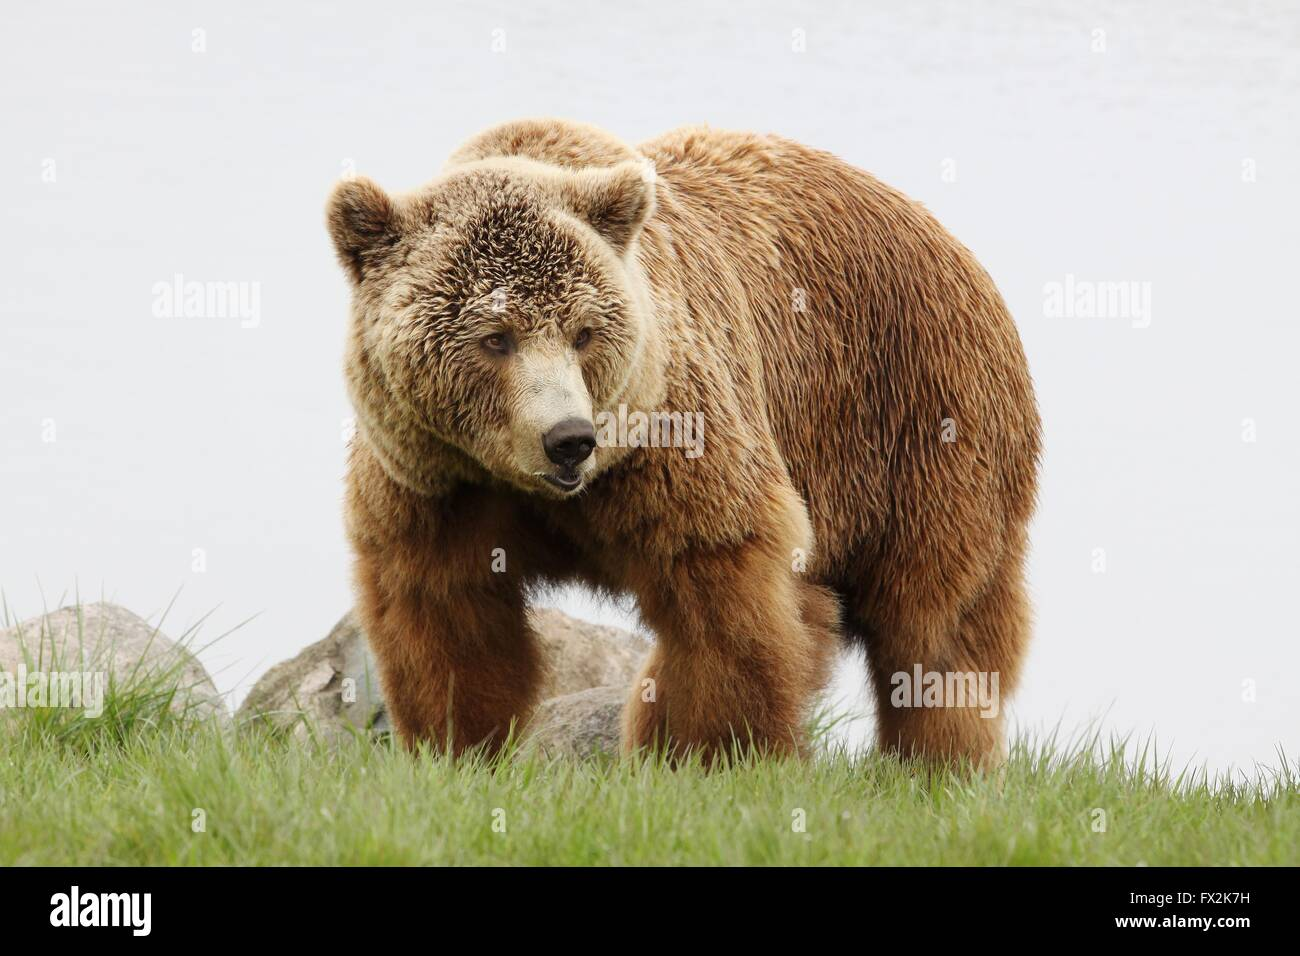 Brown bear in nature - Stock Image